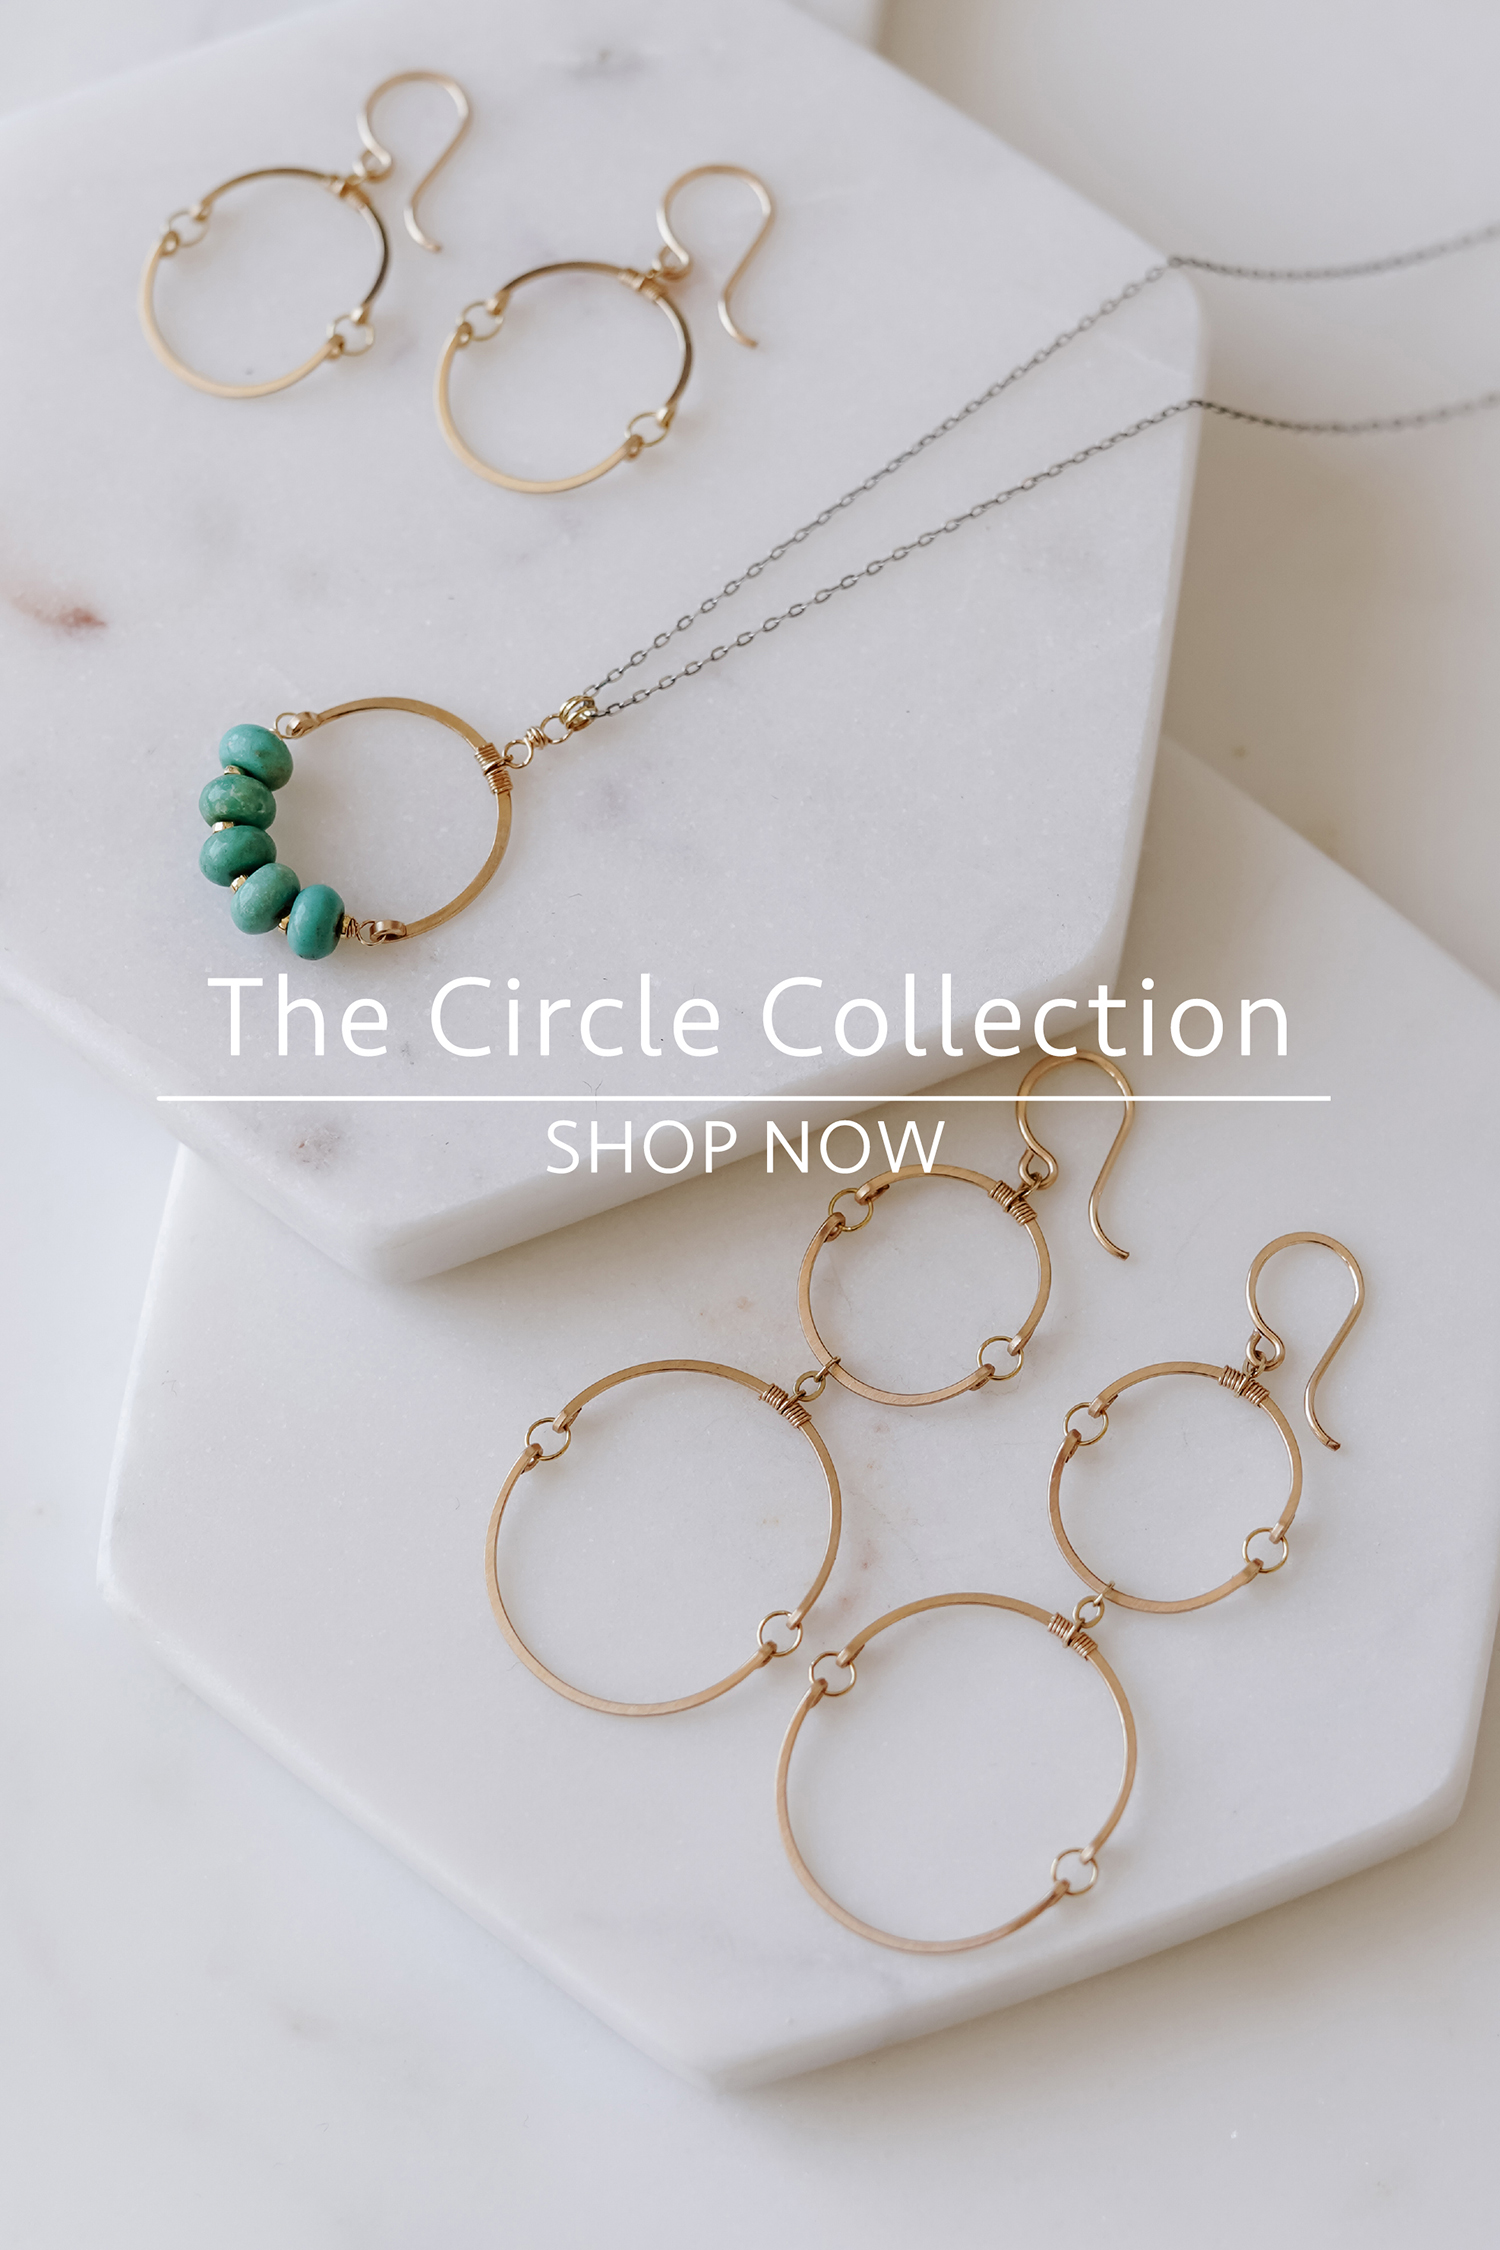 circlecollection.jpg